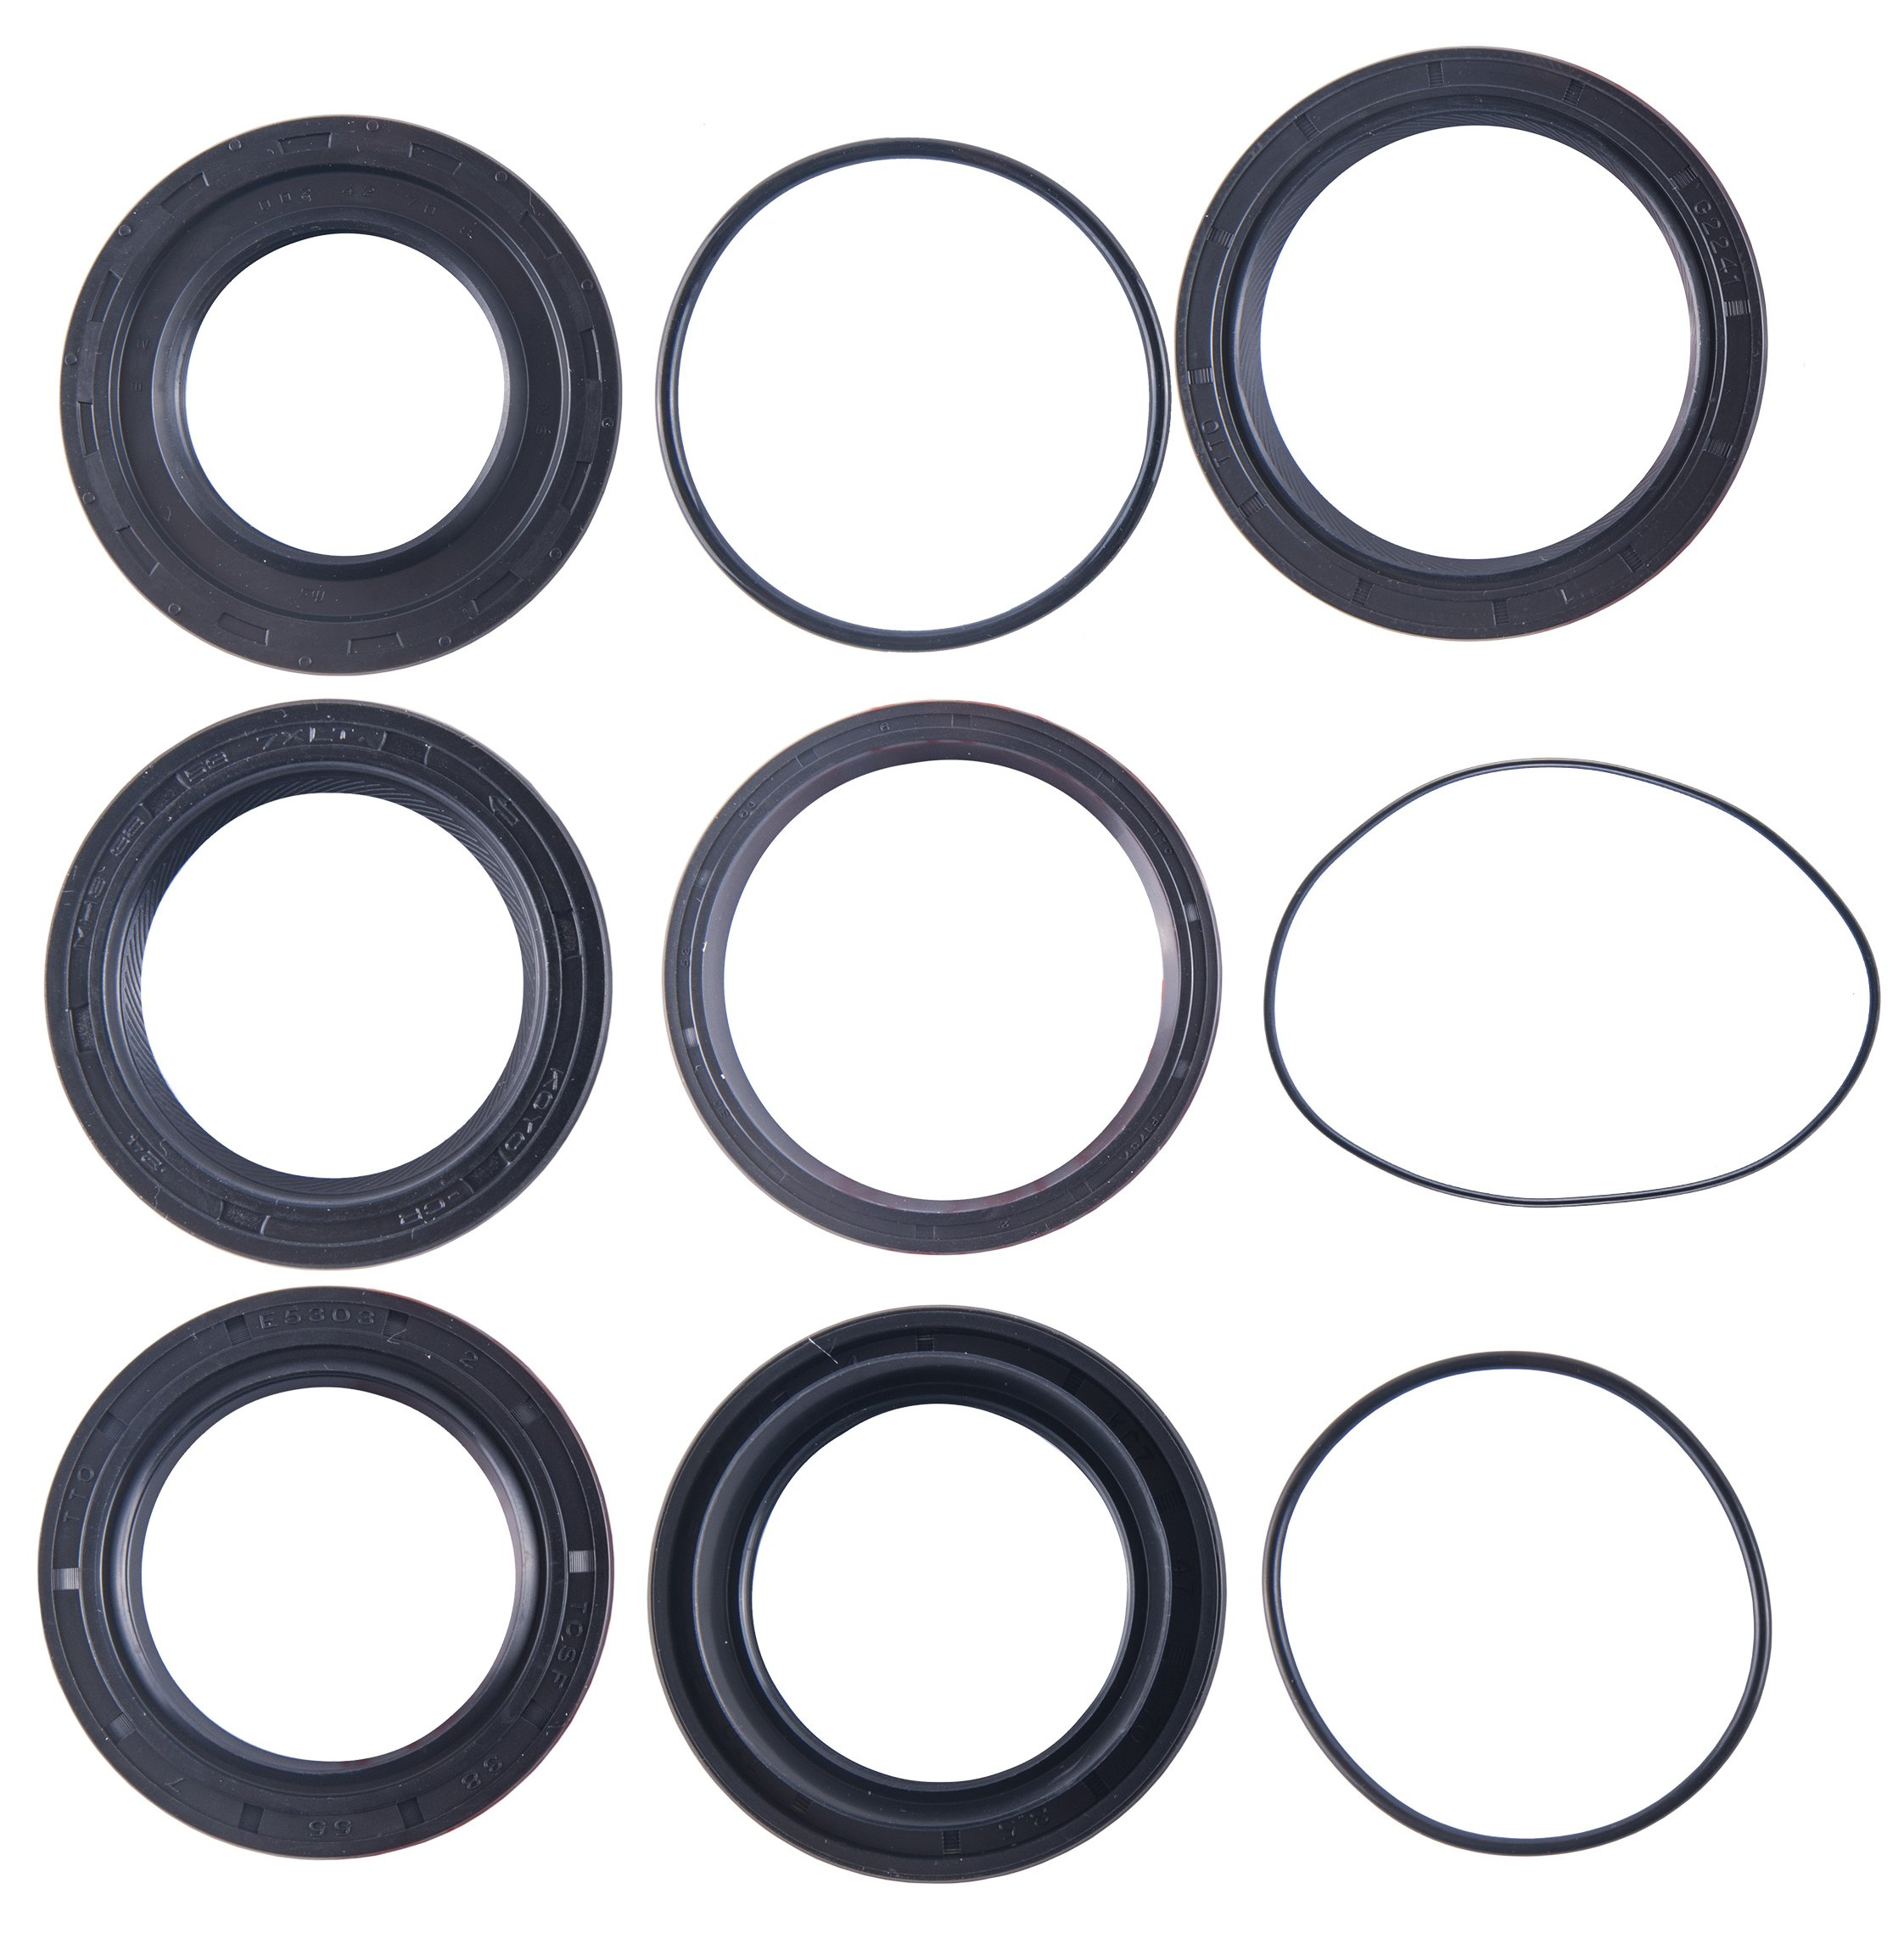 Yamaha rear differential seal kit 350 Wolverine 1995 1996 1997 1998 1999-2005 by East Lake Axle